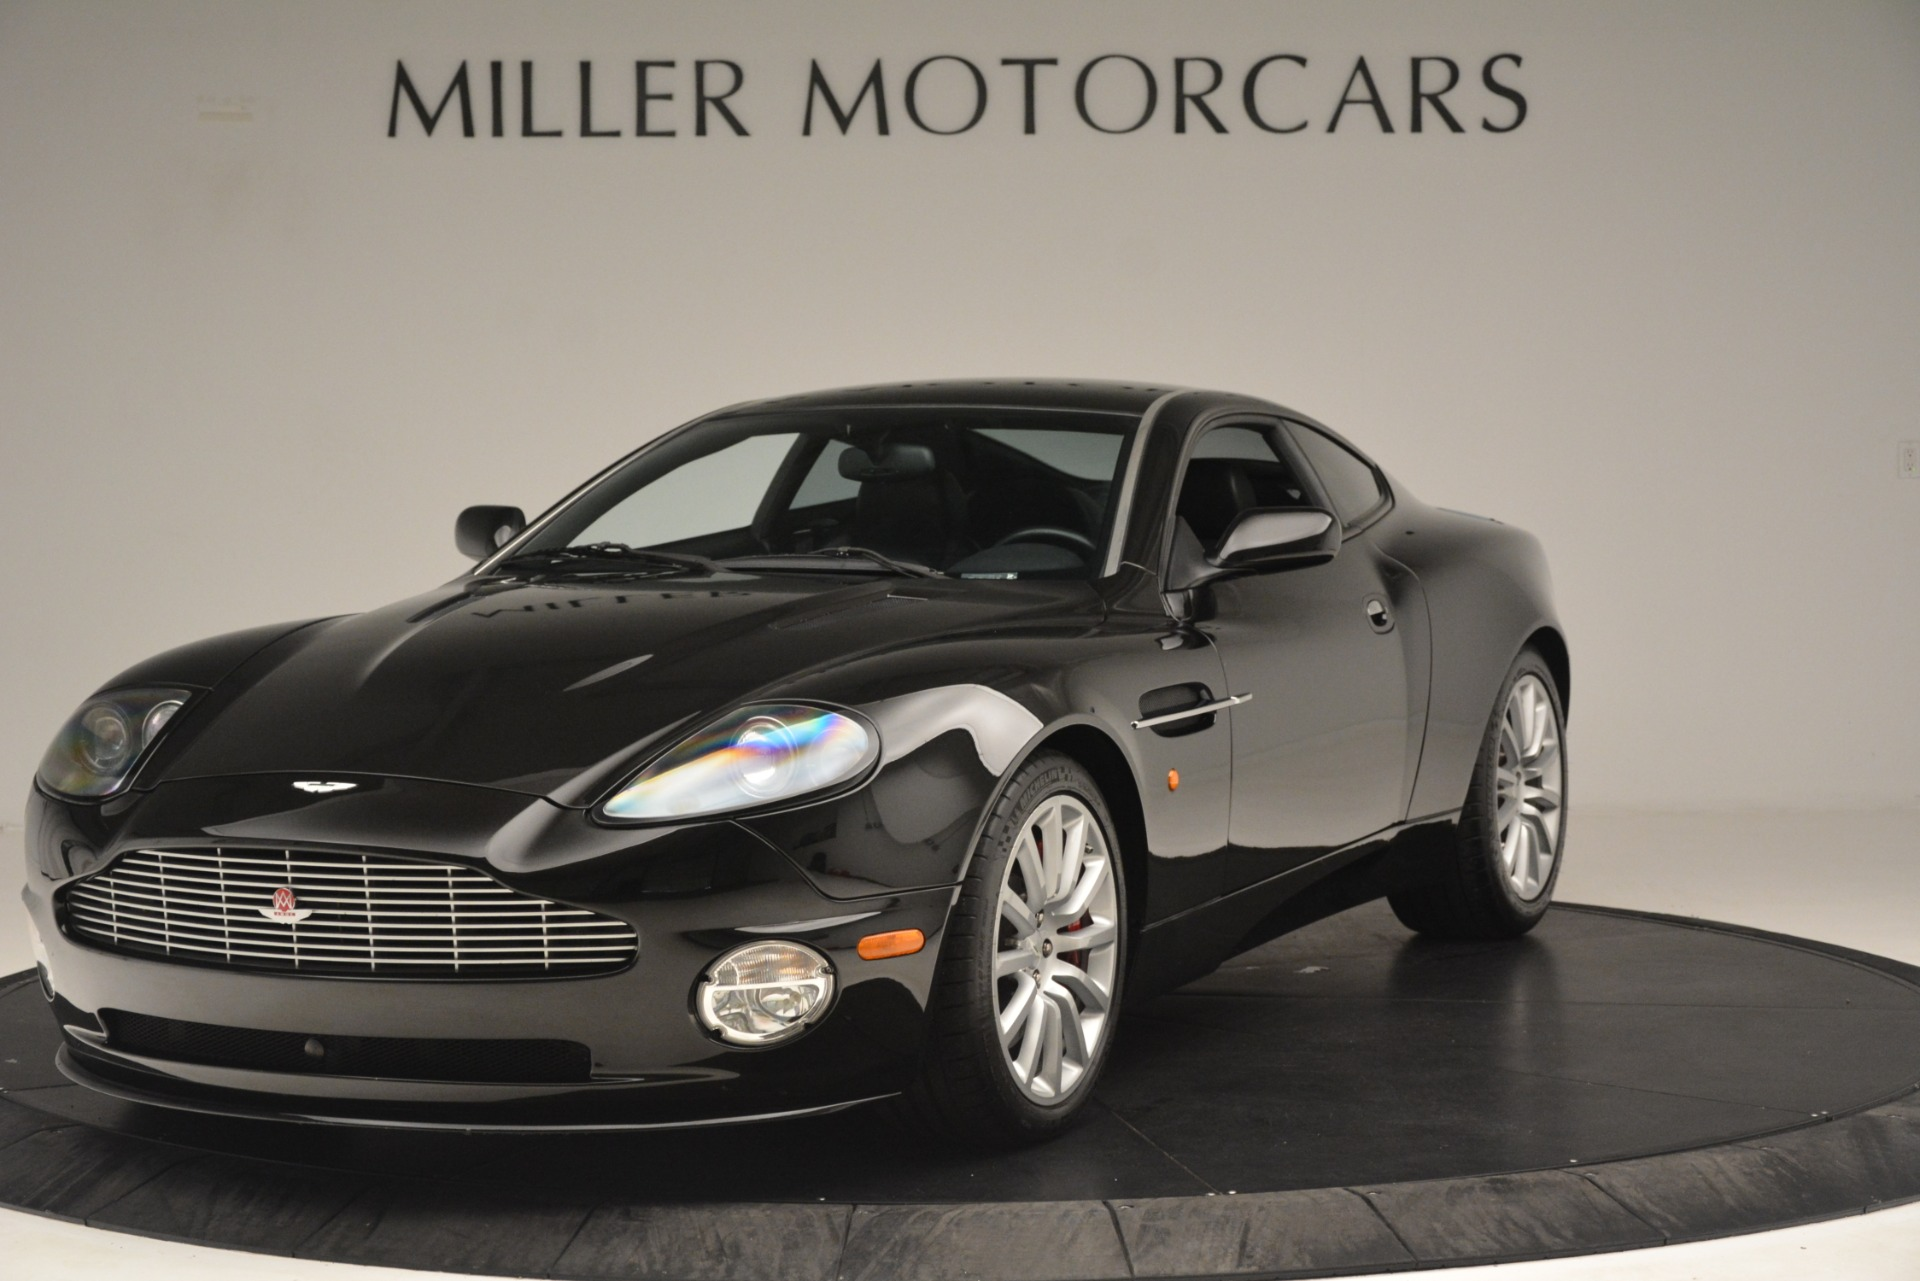 Used 2004 Aston Martin V12 Vanquish for sale Sold at McLaren Greenwich in Greenwich CT 06830 1